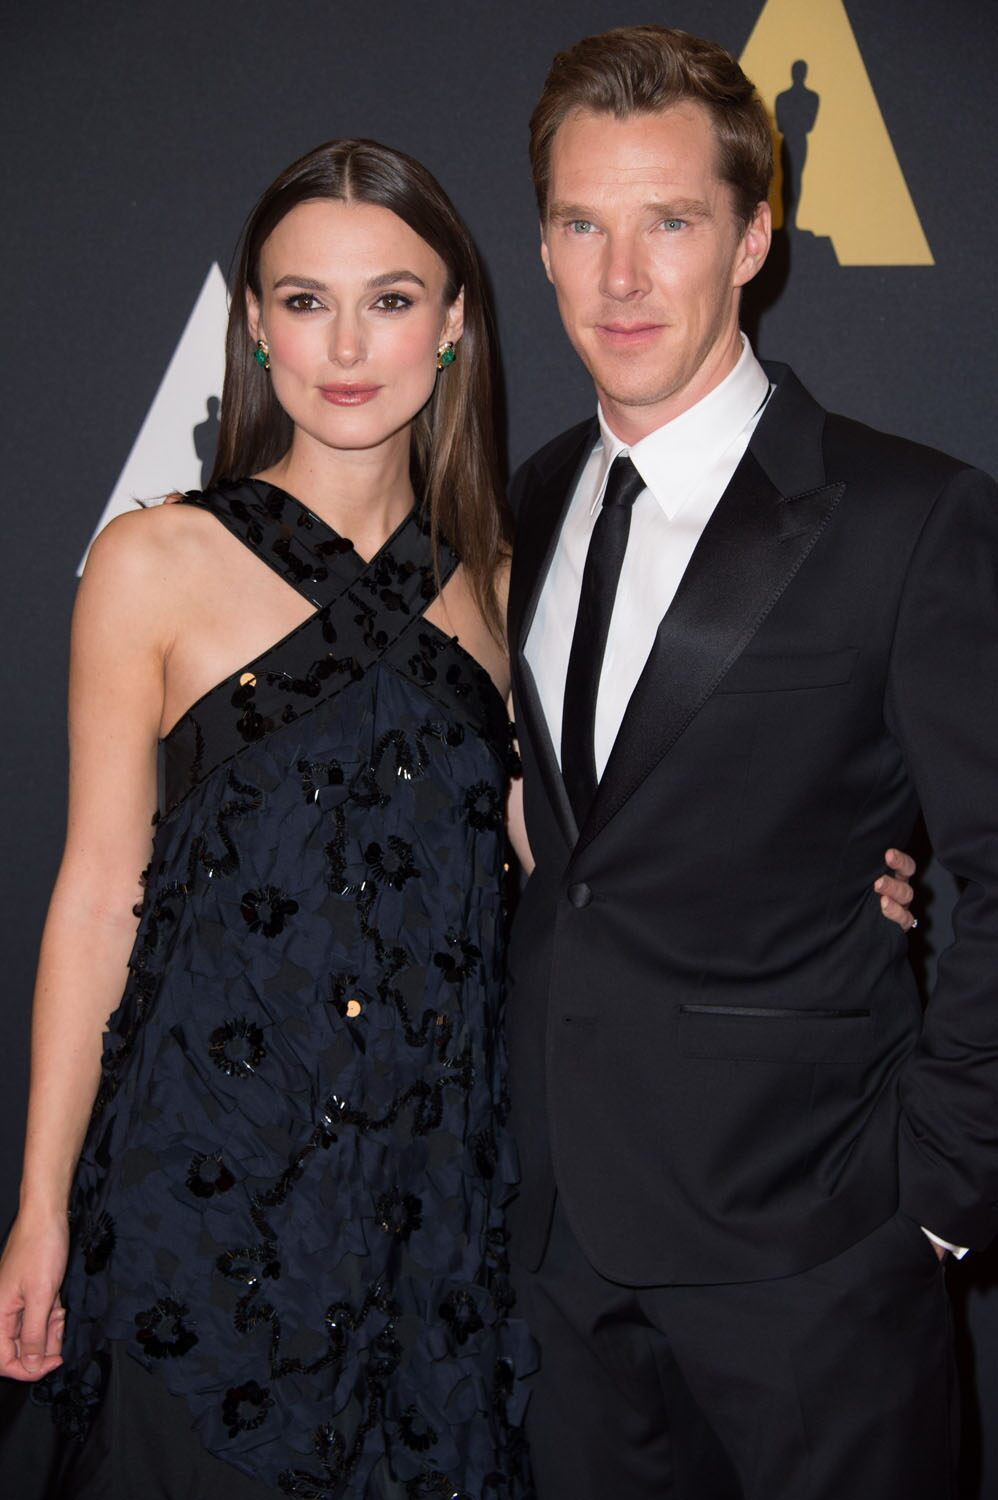 Keira Knightley (left) and Benedict Cumberbatch at the 6th Annual Governors Awards